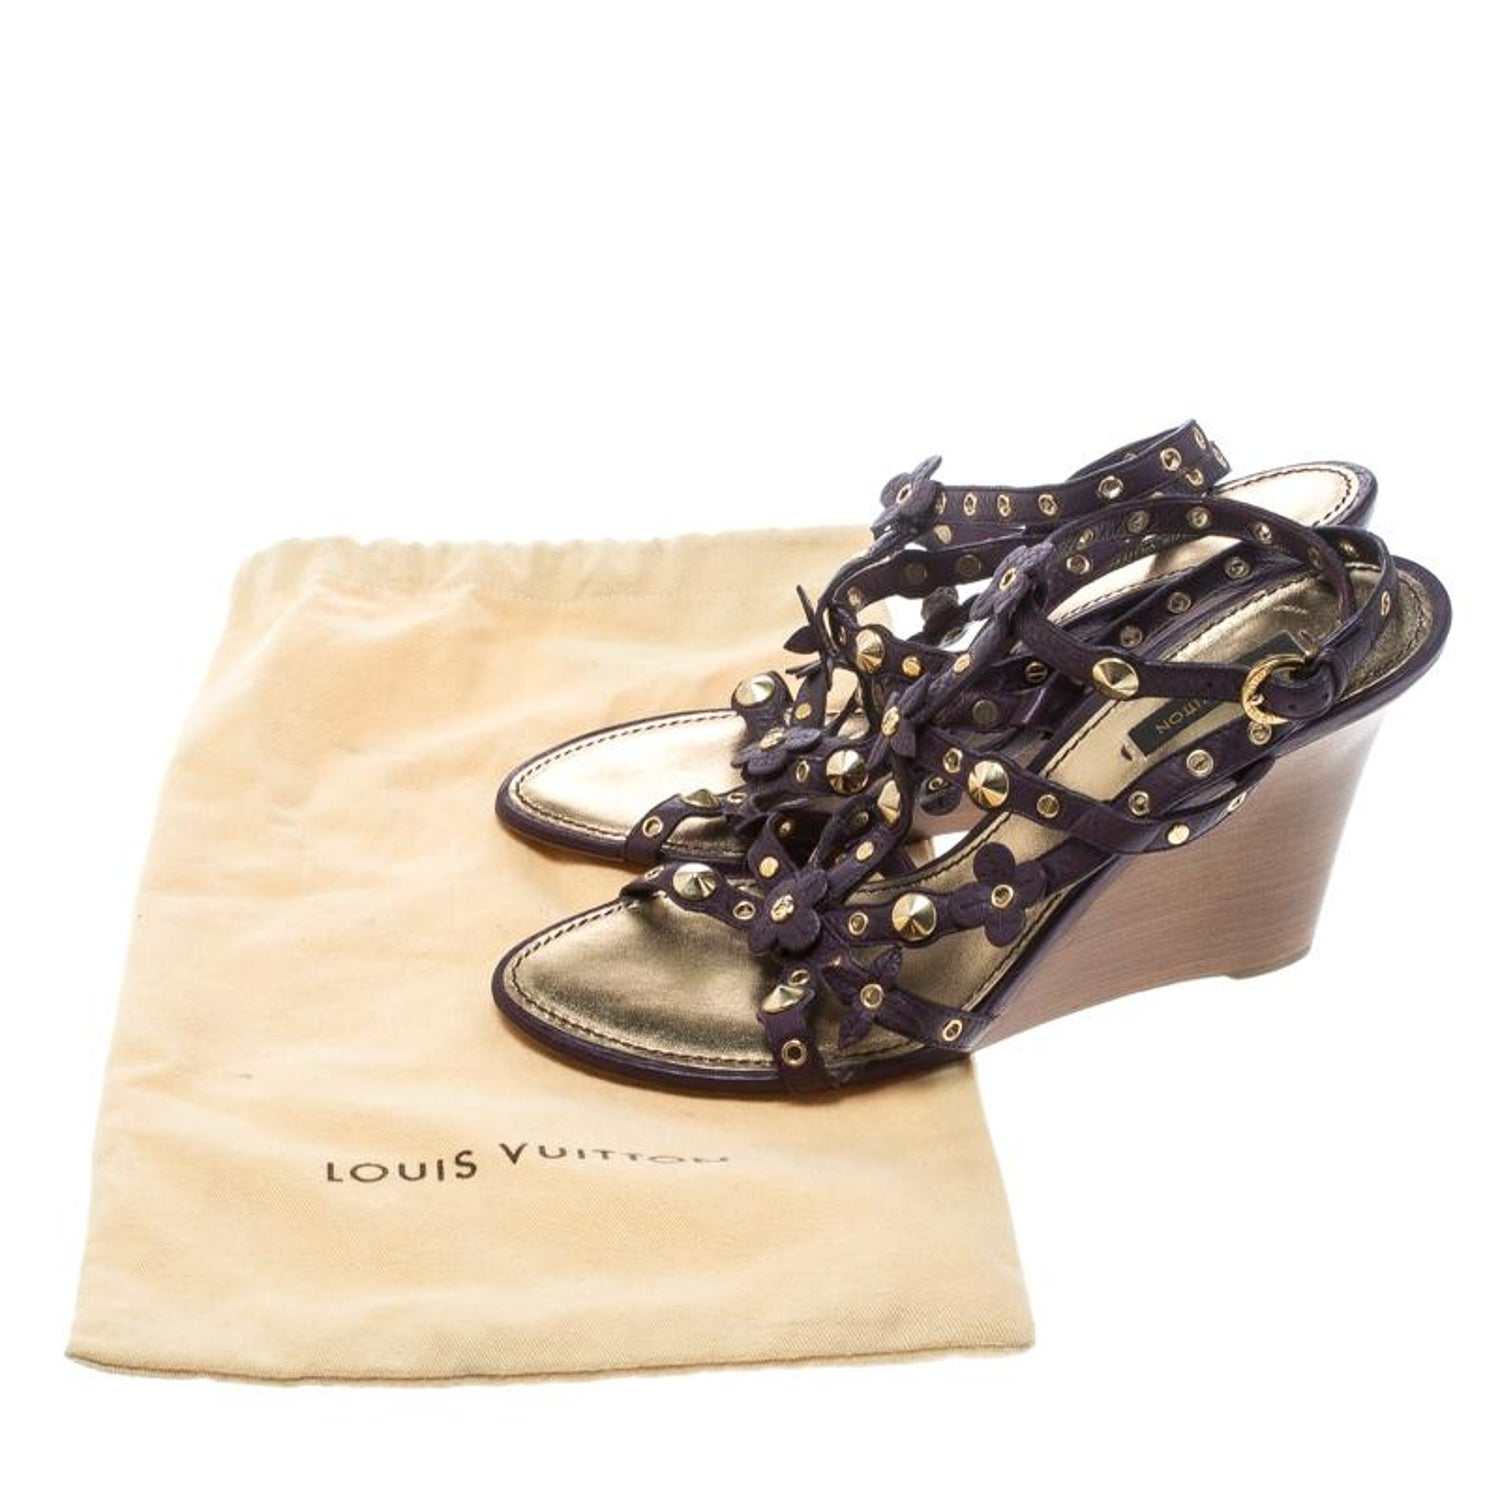 25790d38c930 Louis Vuitton Purple Leather Studded Wedge Sandals Size 38.5 For Sale at  1stdibs